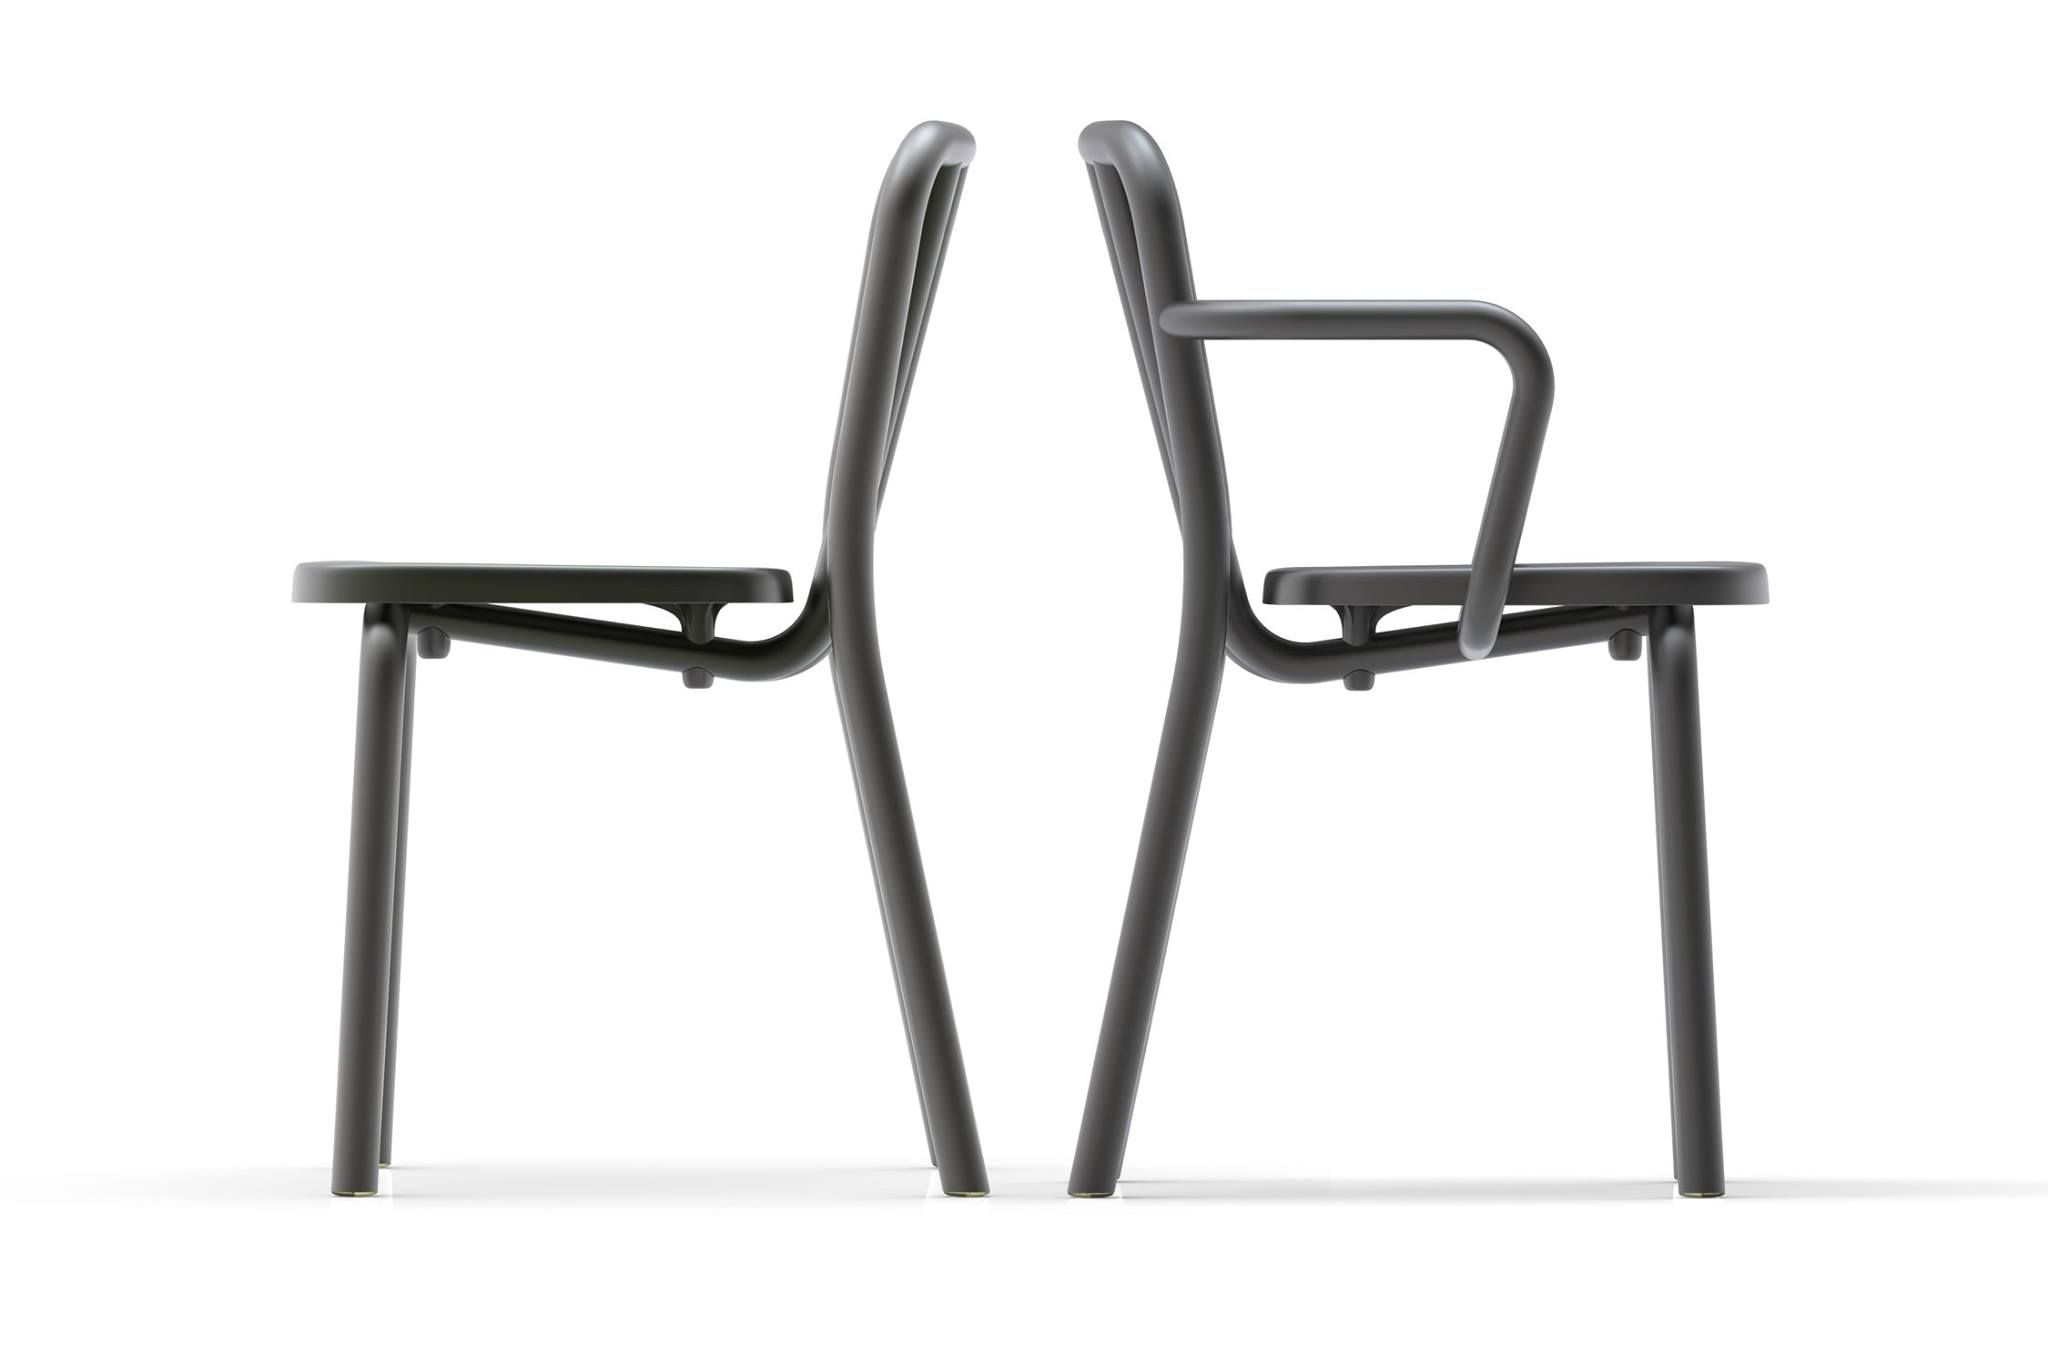 Tube Chair by Eugeni Quitllet for mobles